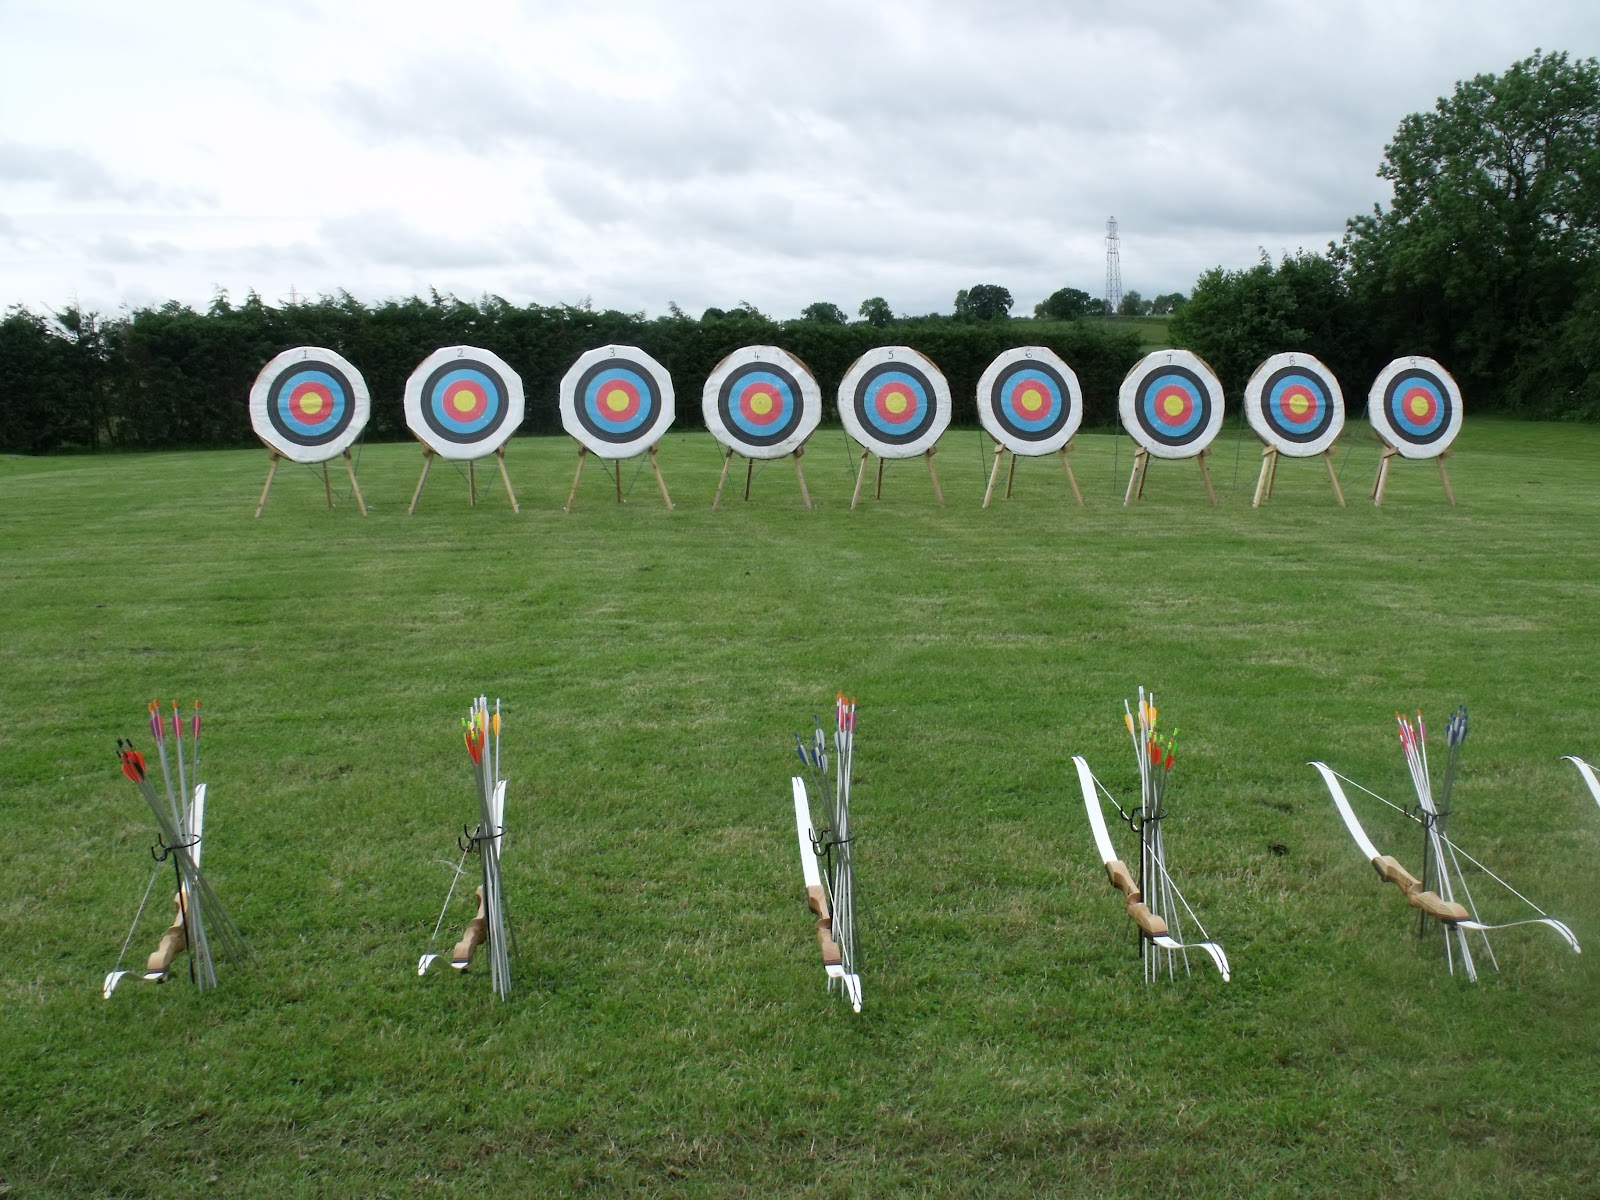 Olympic archery field